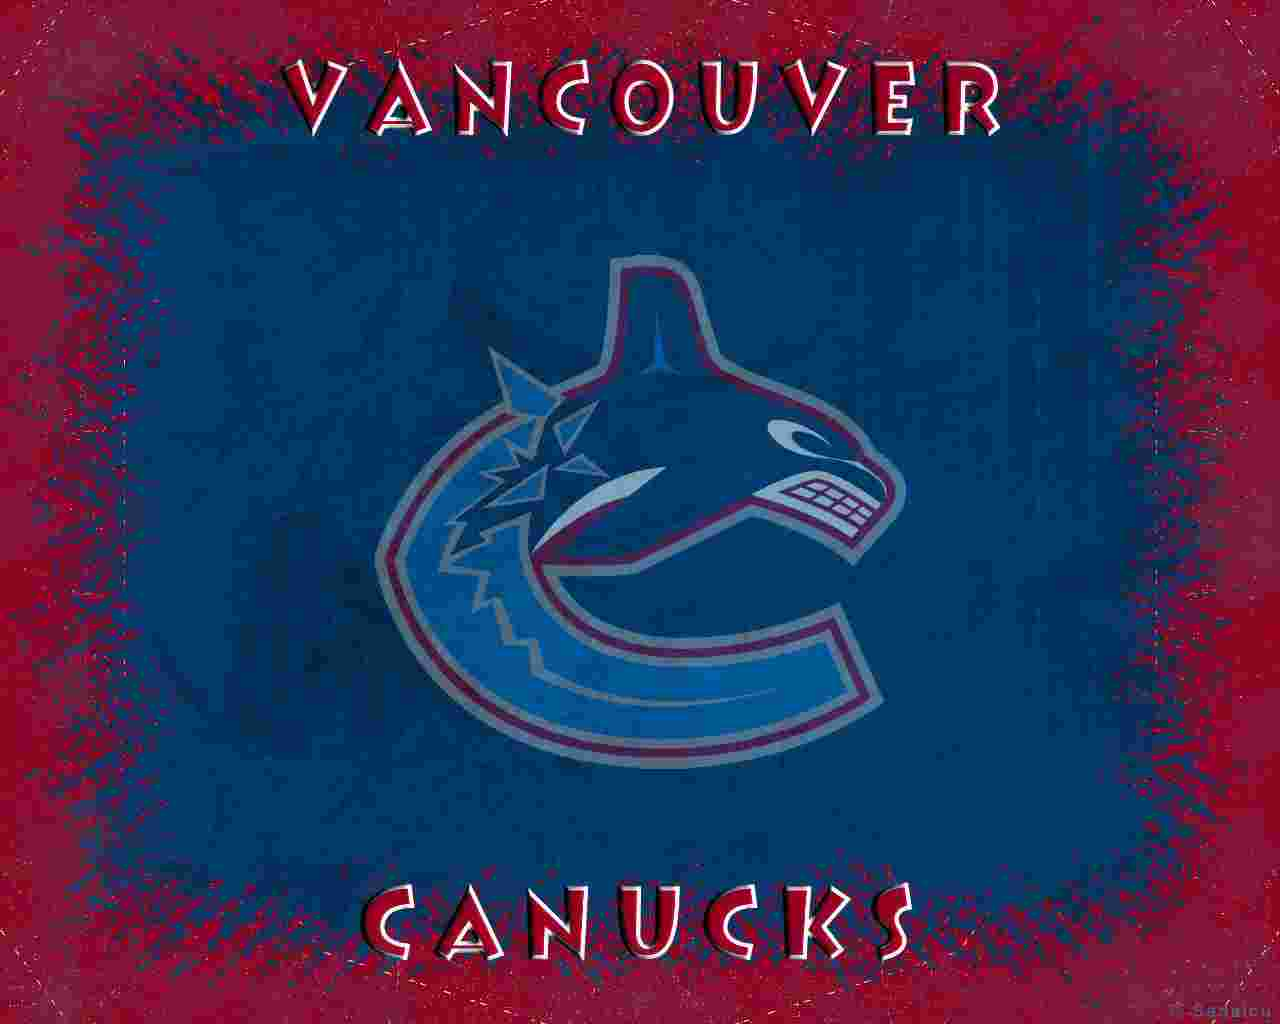 Vancouver Canucks wallpaper   Hockey   Sport   Wallpaper 1280x1024